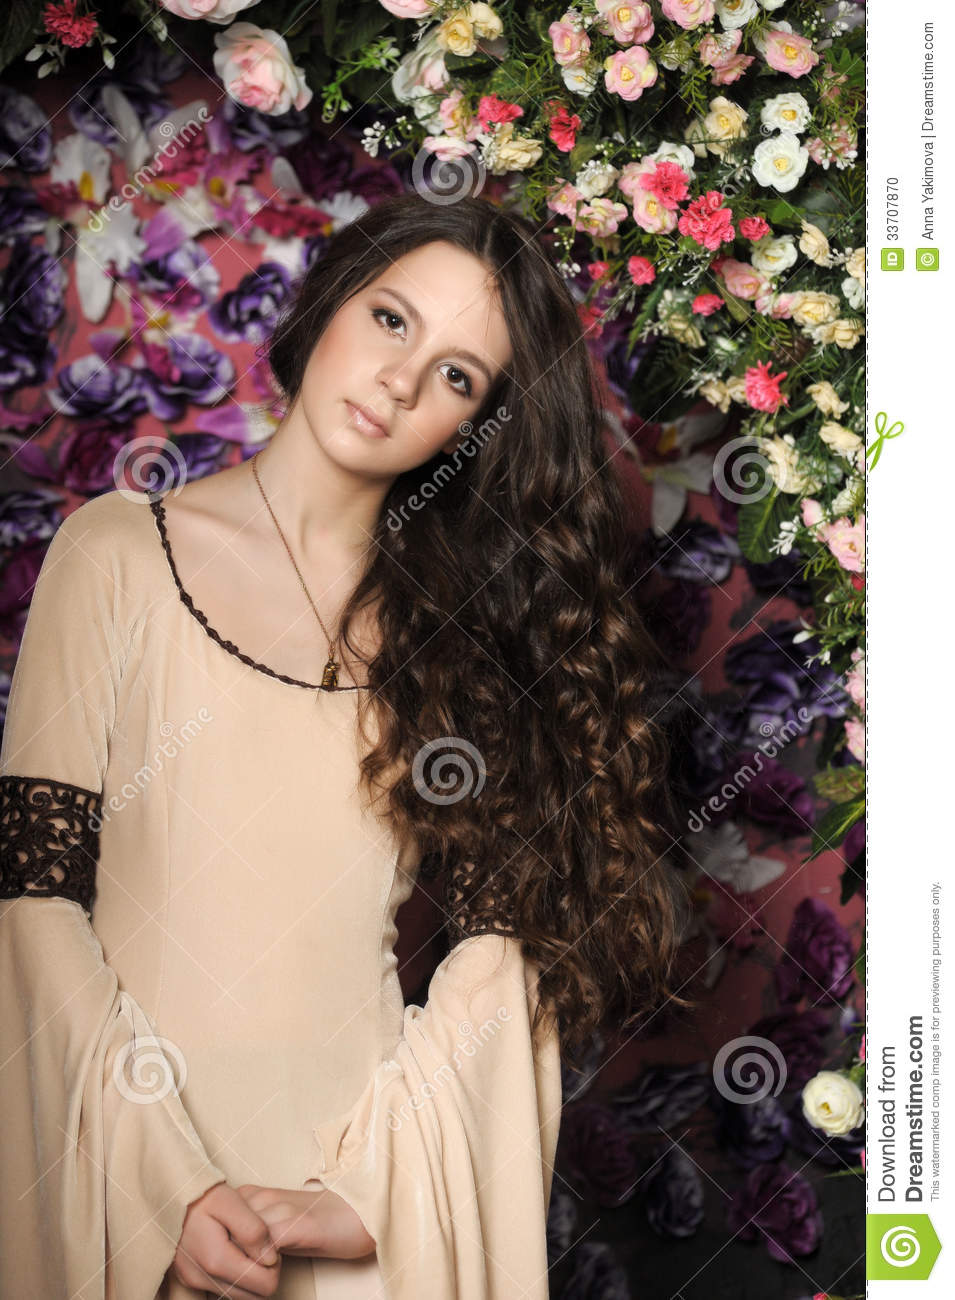 Beautiful Girl With Long Hair With Curls Stock Photo - Image: 33707870